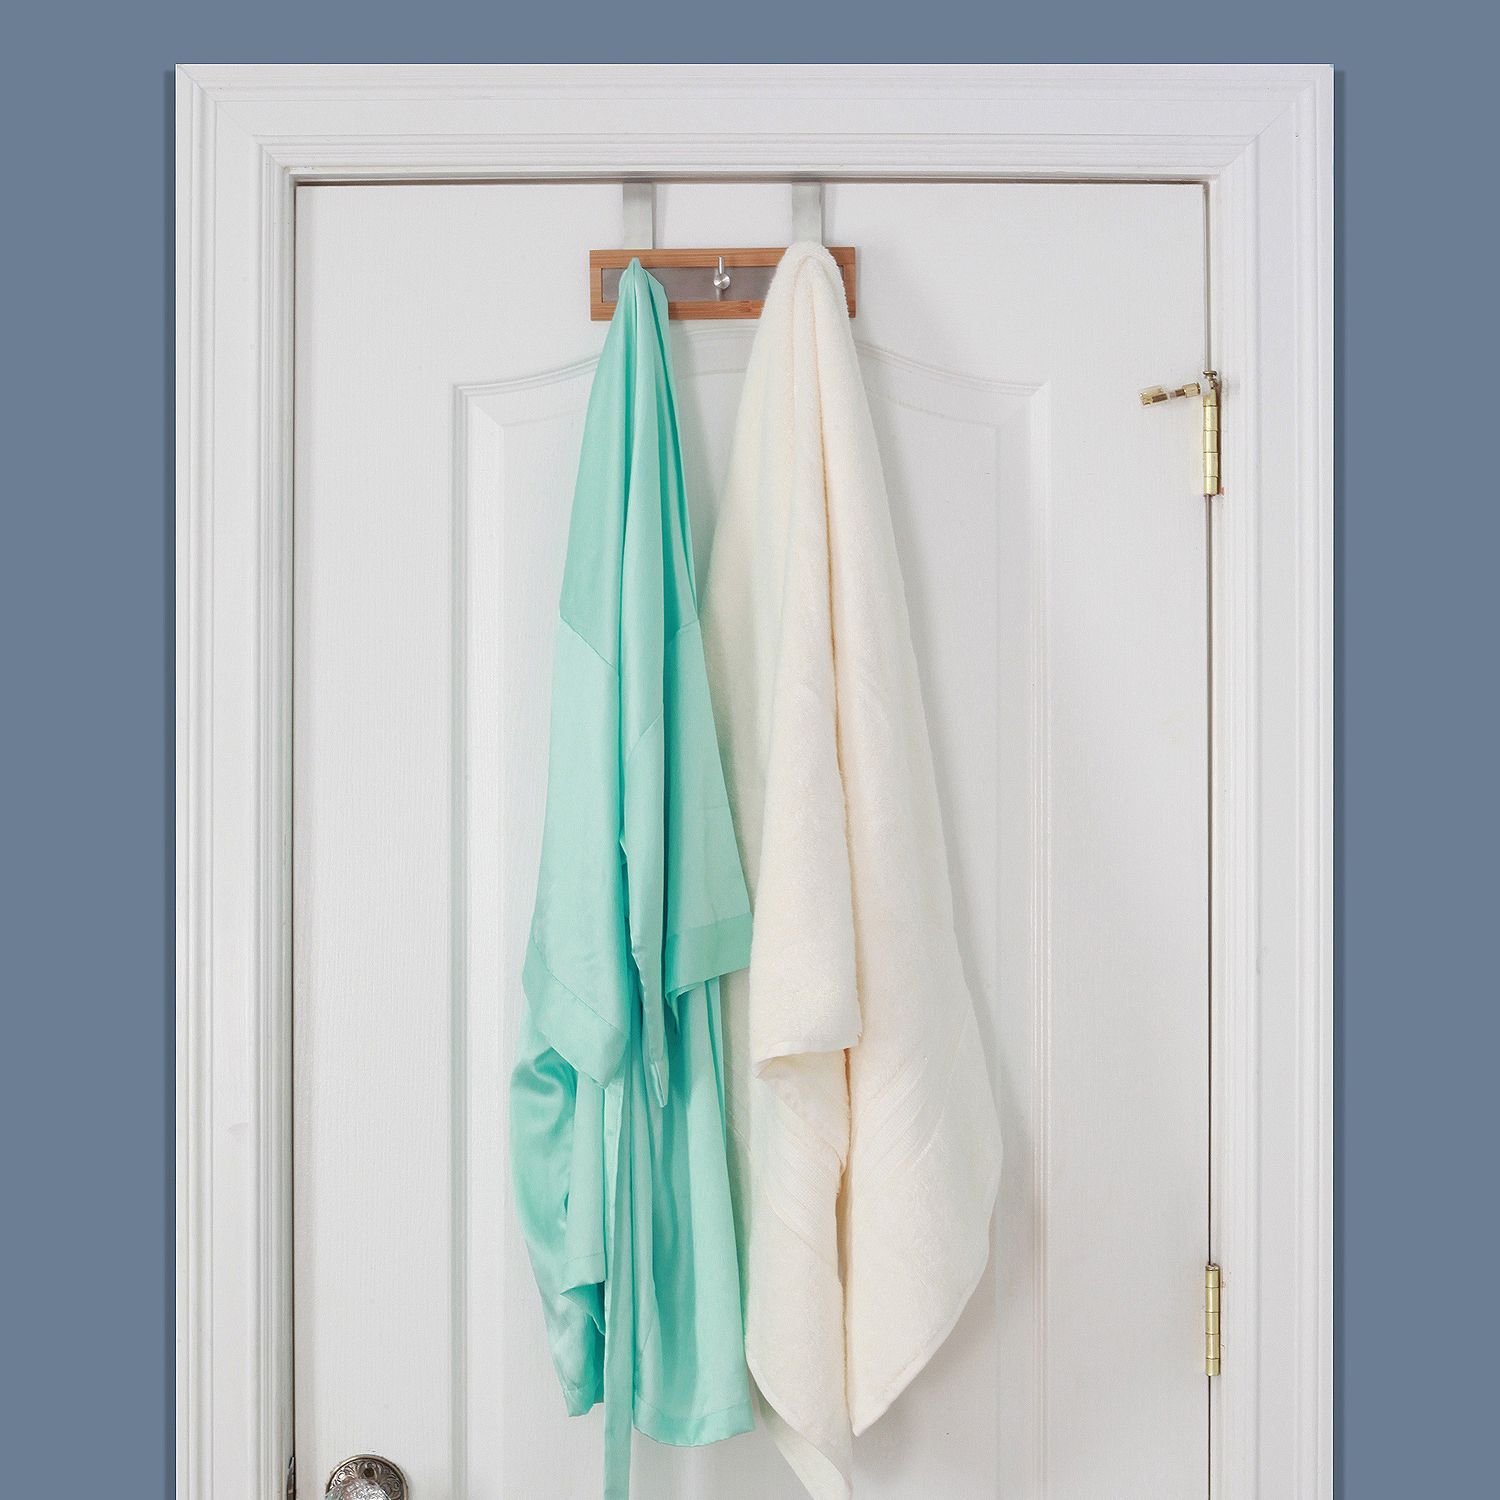 3 Over the Door Bamboo Hooks for Bathroom | Pinterest | Bathroom ...